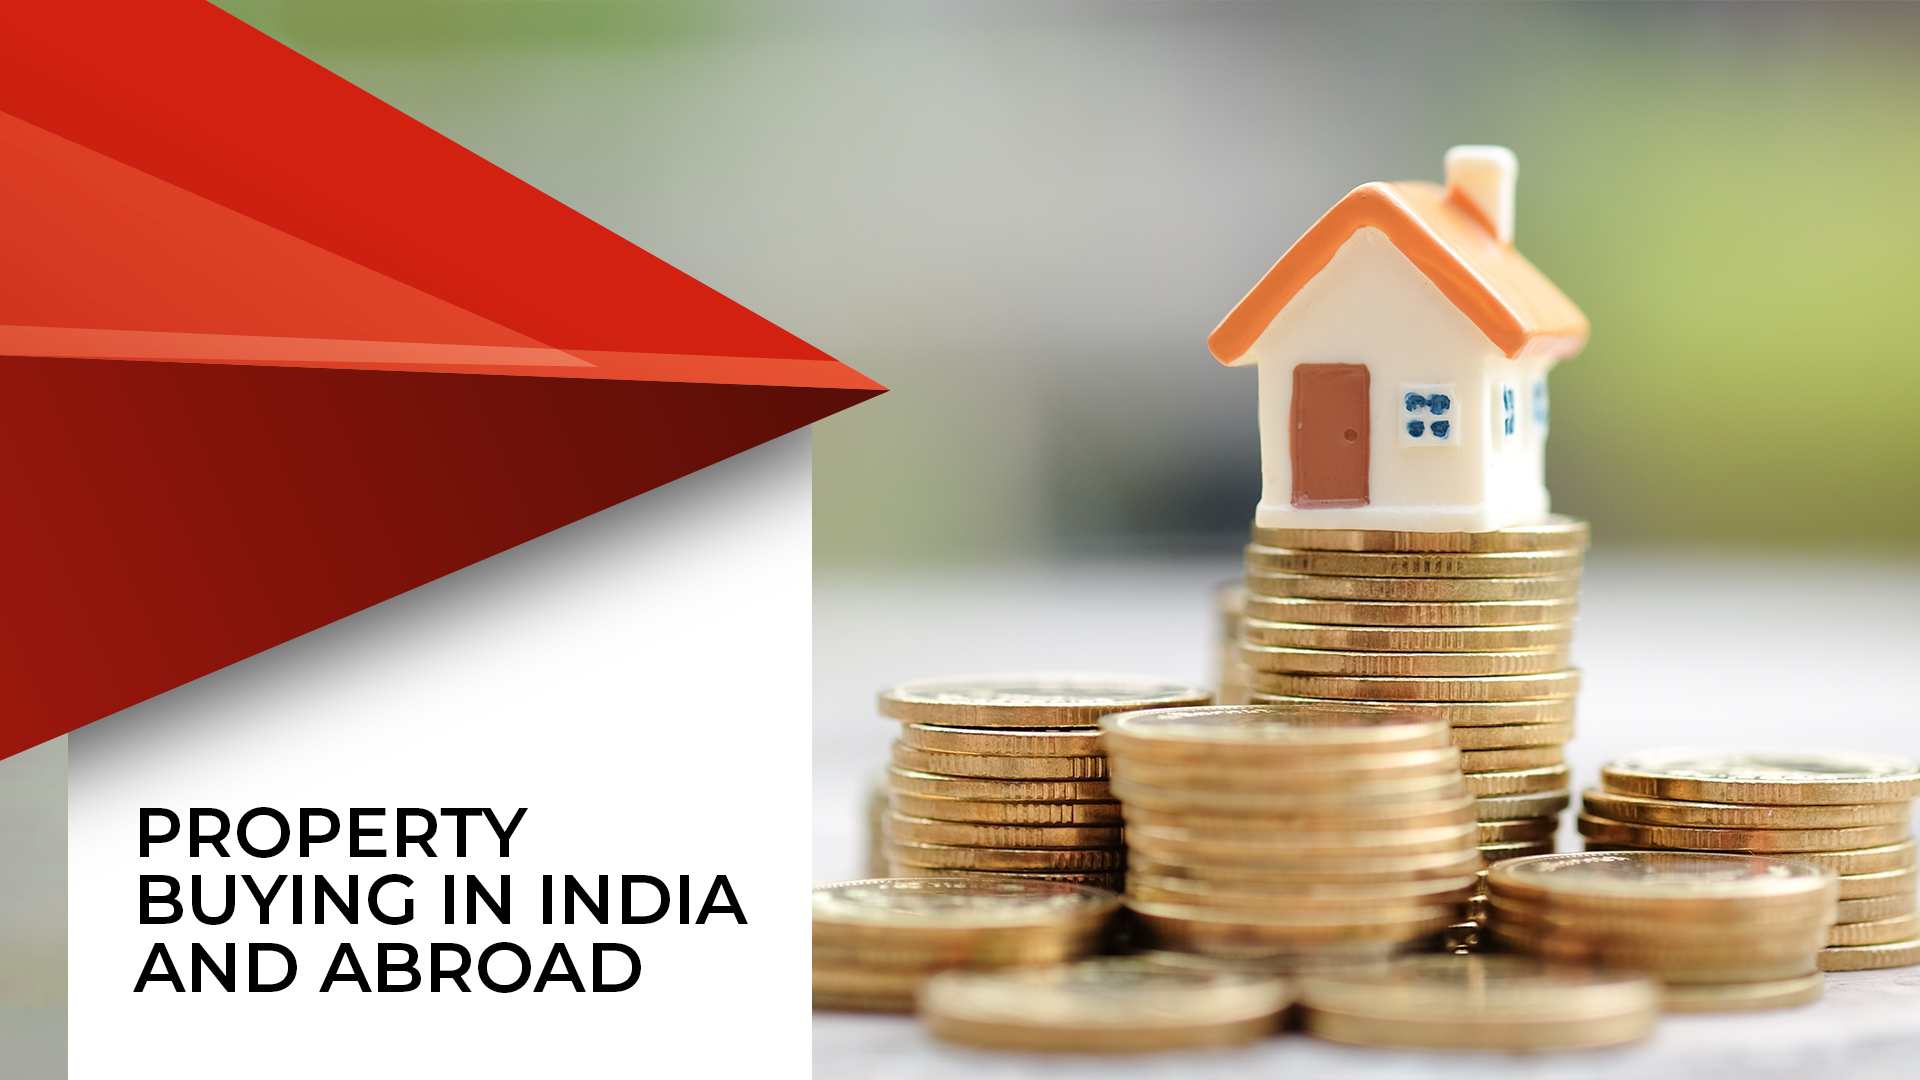 NRIs Buying Indian Property, And Indians Buying Property Abroad